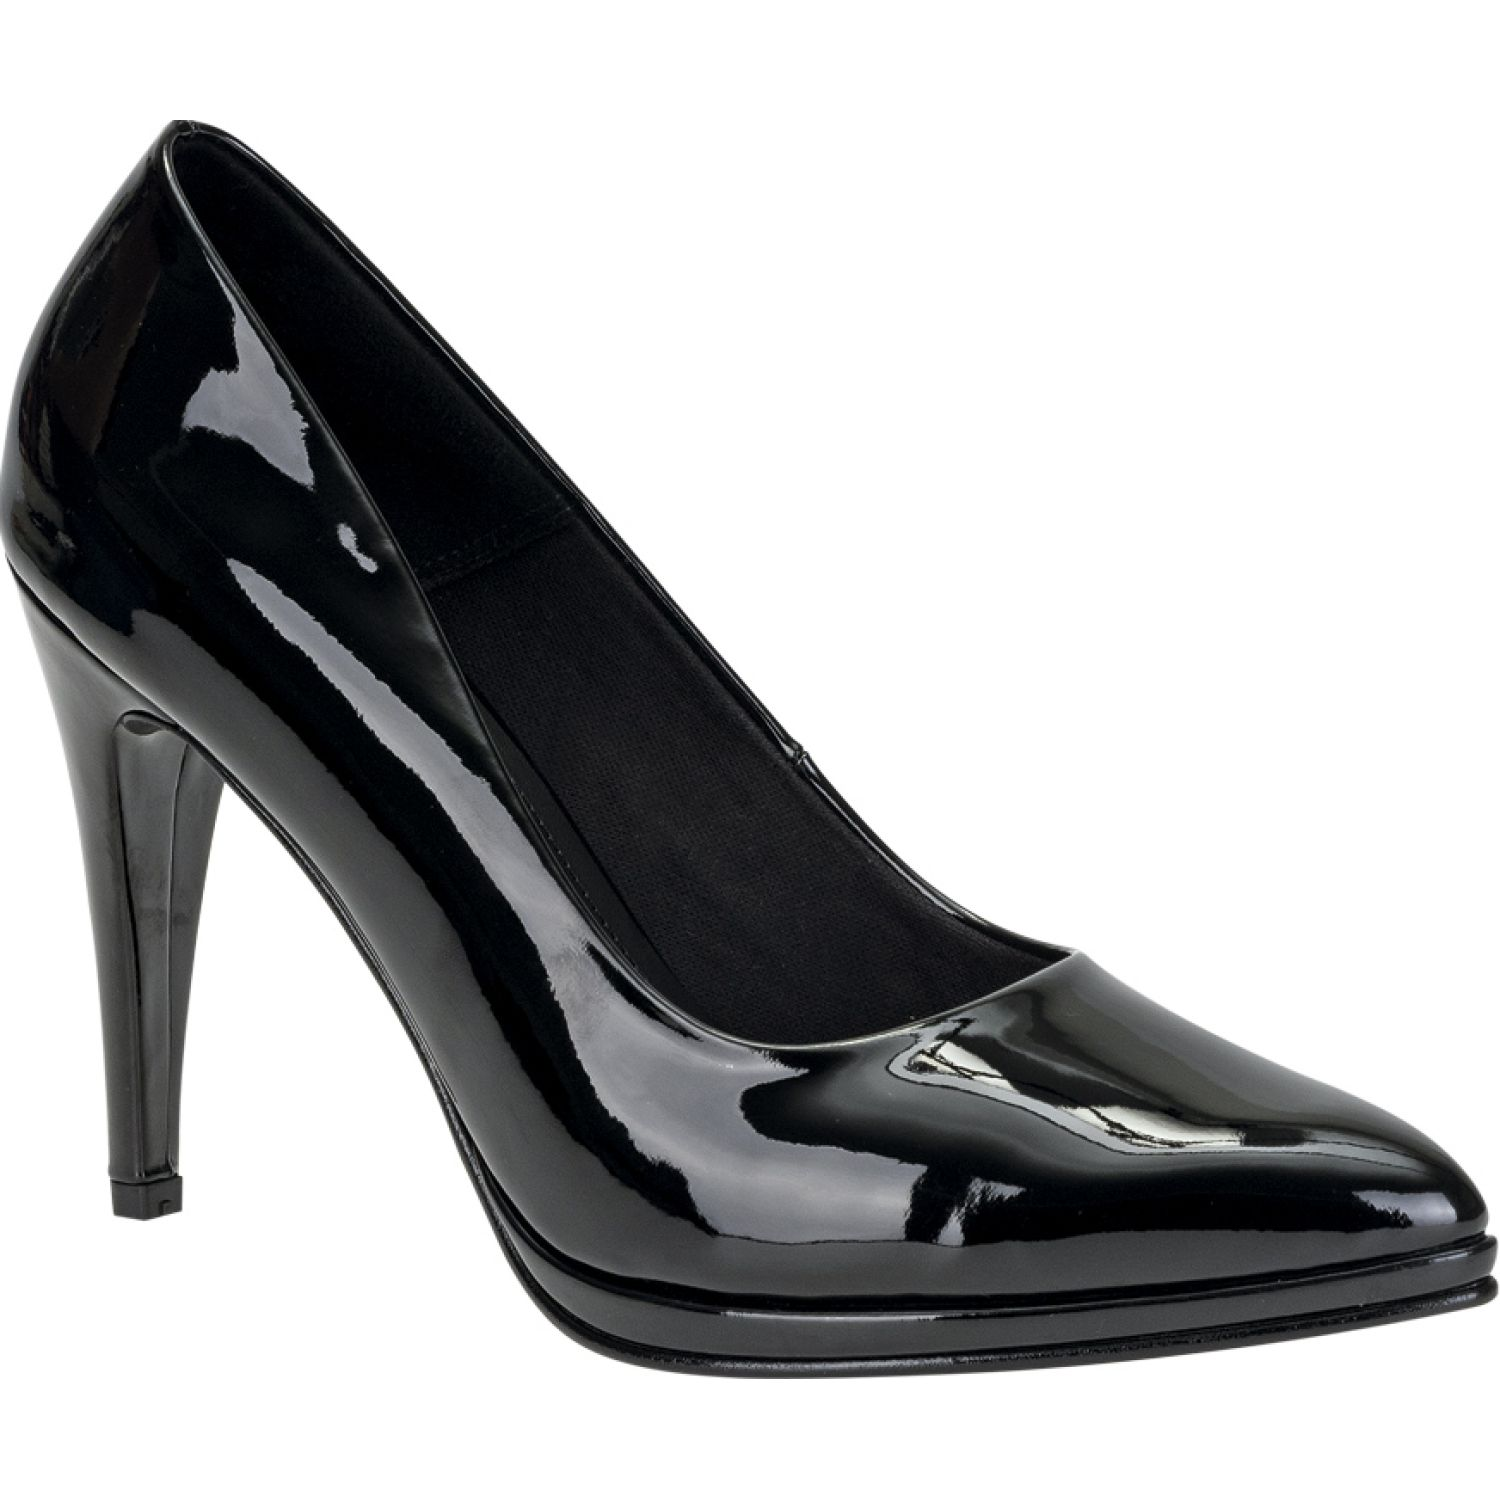 FOOTLOOSE Fh-03i18 NEGRO Estiletos y pumps